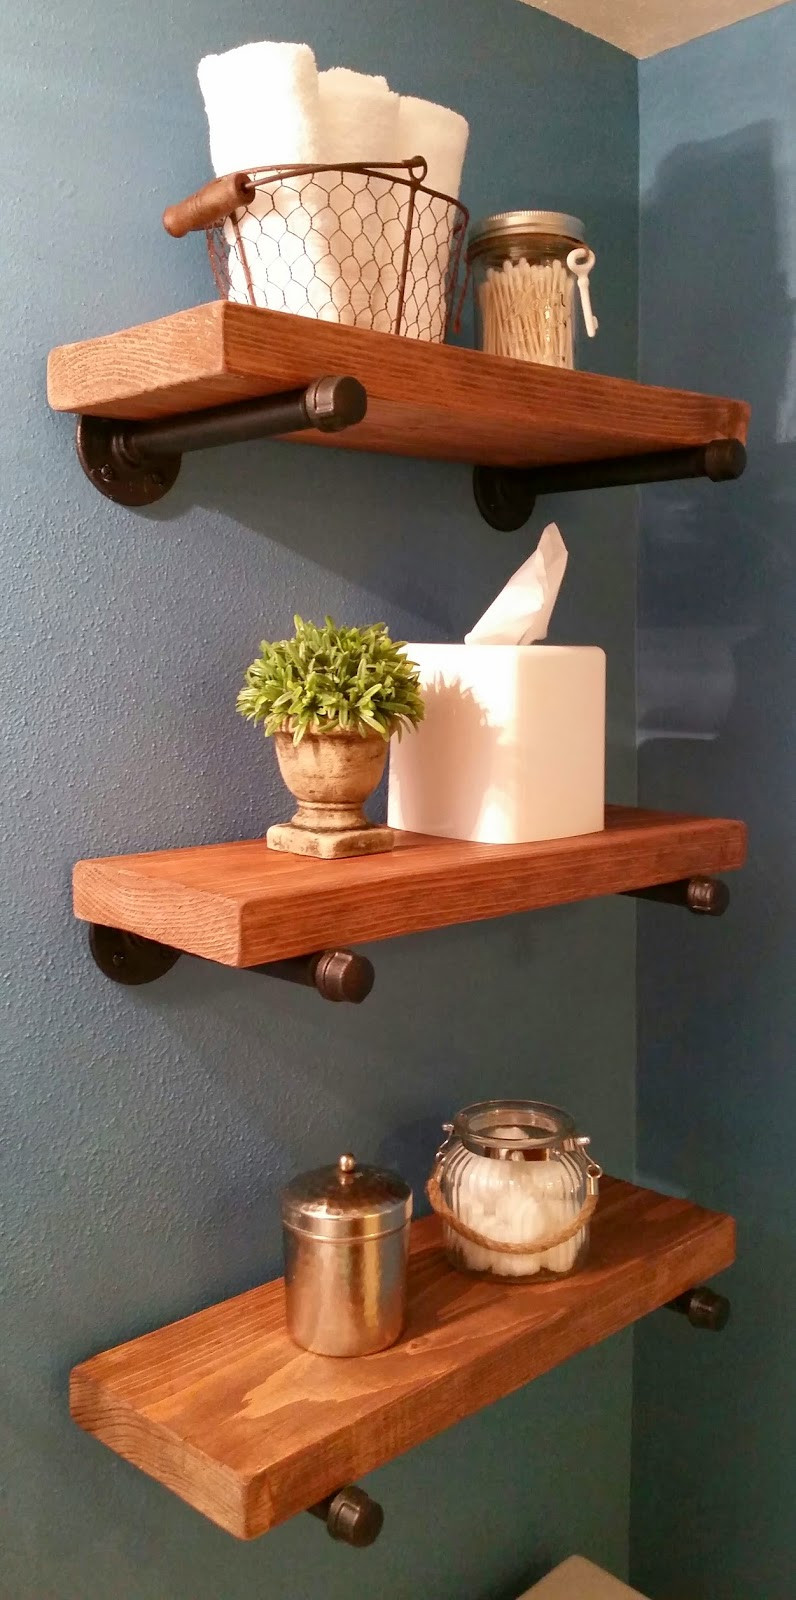 Best ideas about Pipe Shelves DIY . Save or Pin DIY Industrial Pipe Shelving Signed by Soden Now.